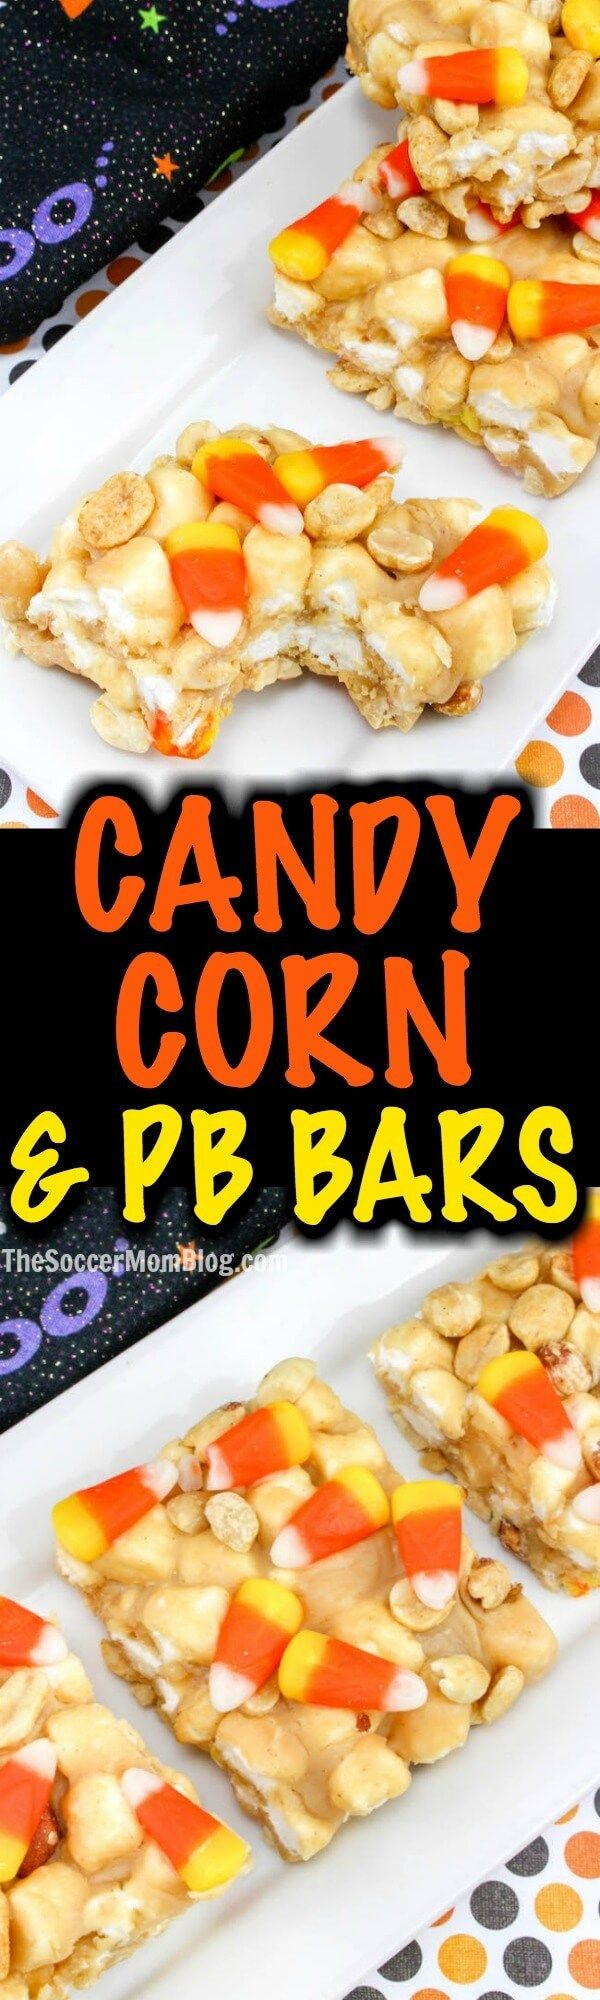 Peanut Butter & Candy Corn Marshmallow Bars— it's a long name, but that's because this fall dessert is packed with AWESOMENESS!!